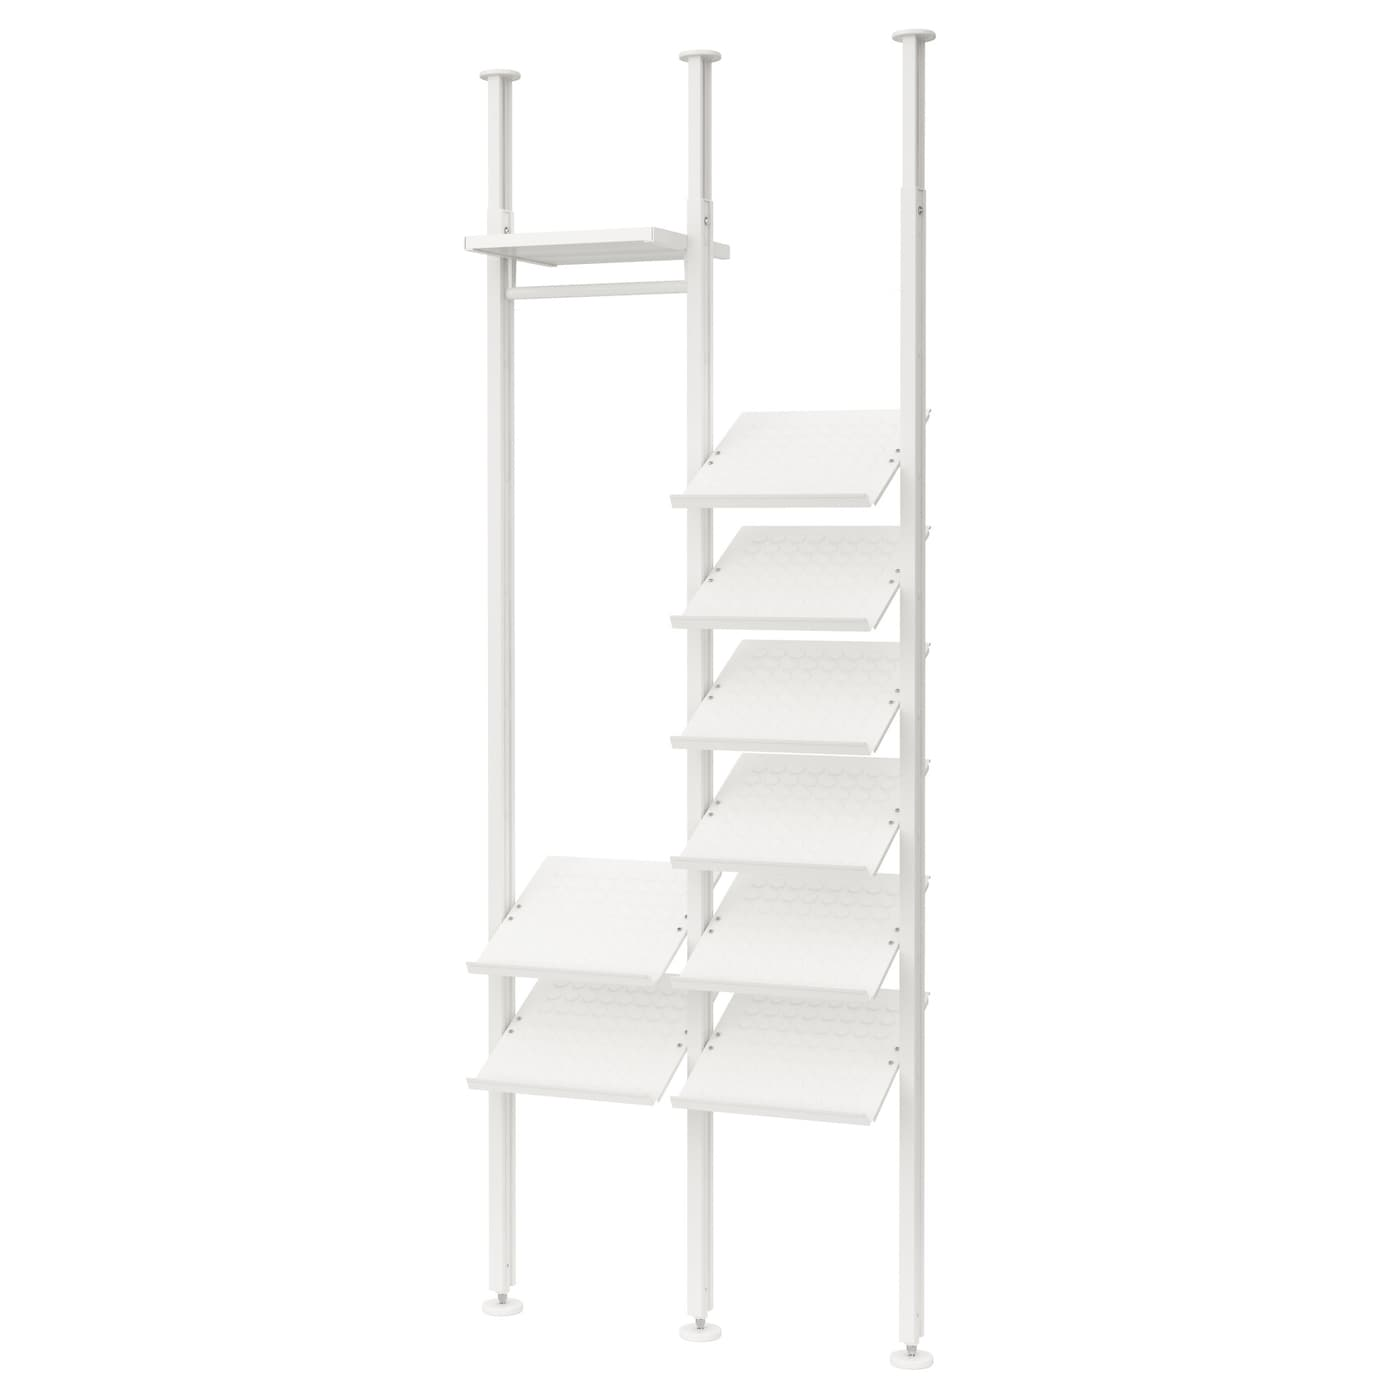 IKEA ELVARLI 2 sections Customise the space with the adjustable shelf.